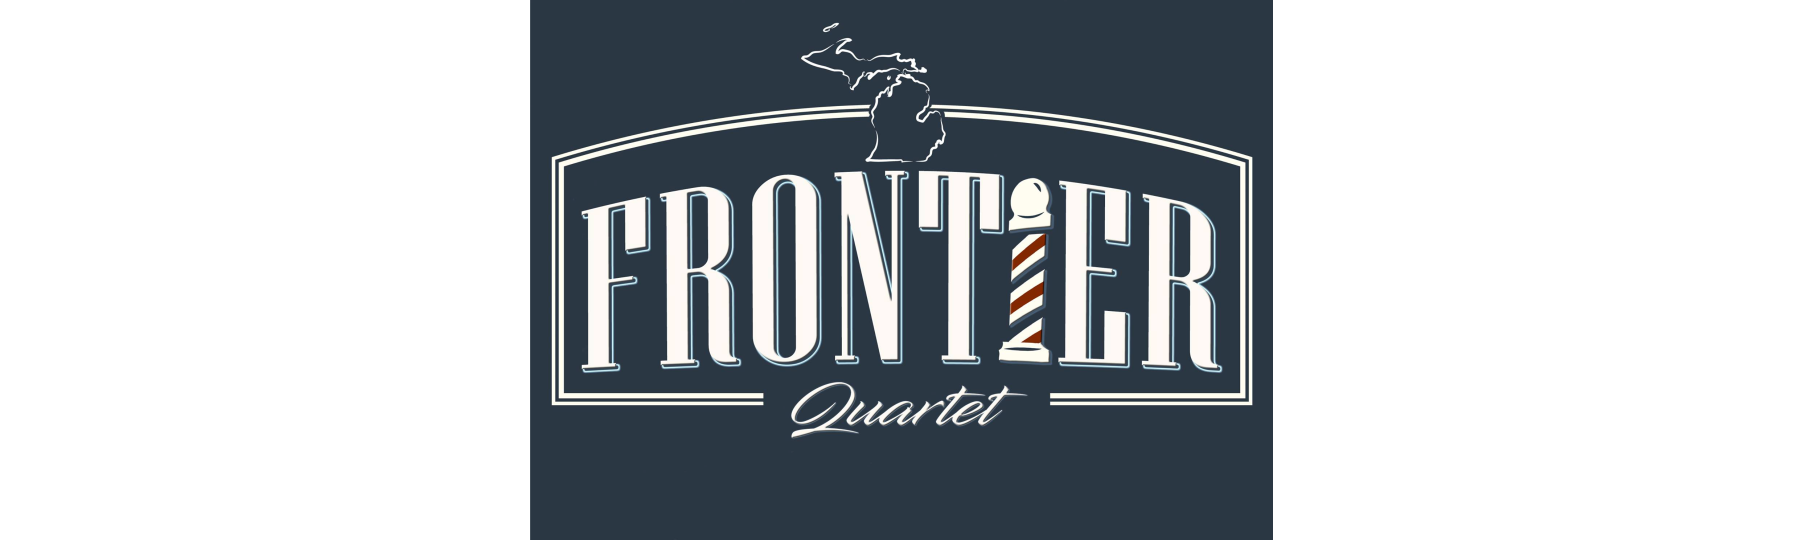 FrontierQ-logo-wide-transp1.png